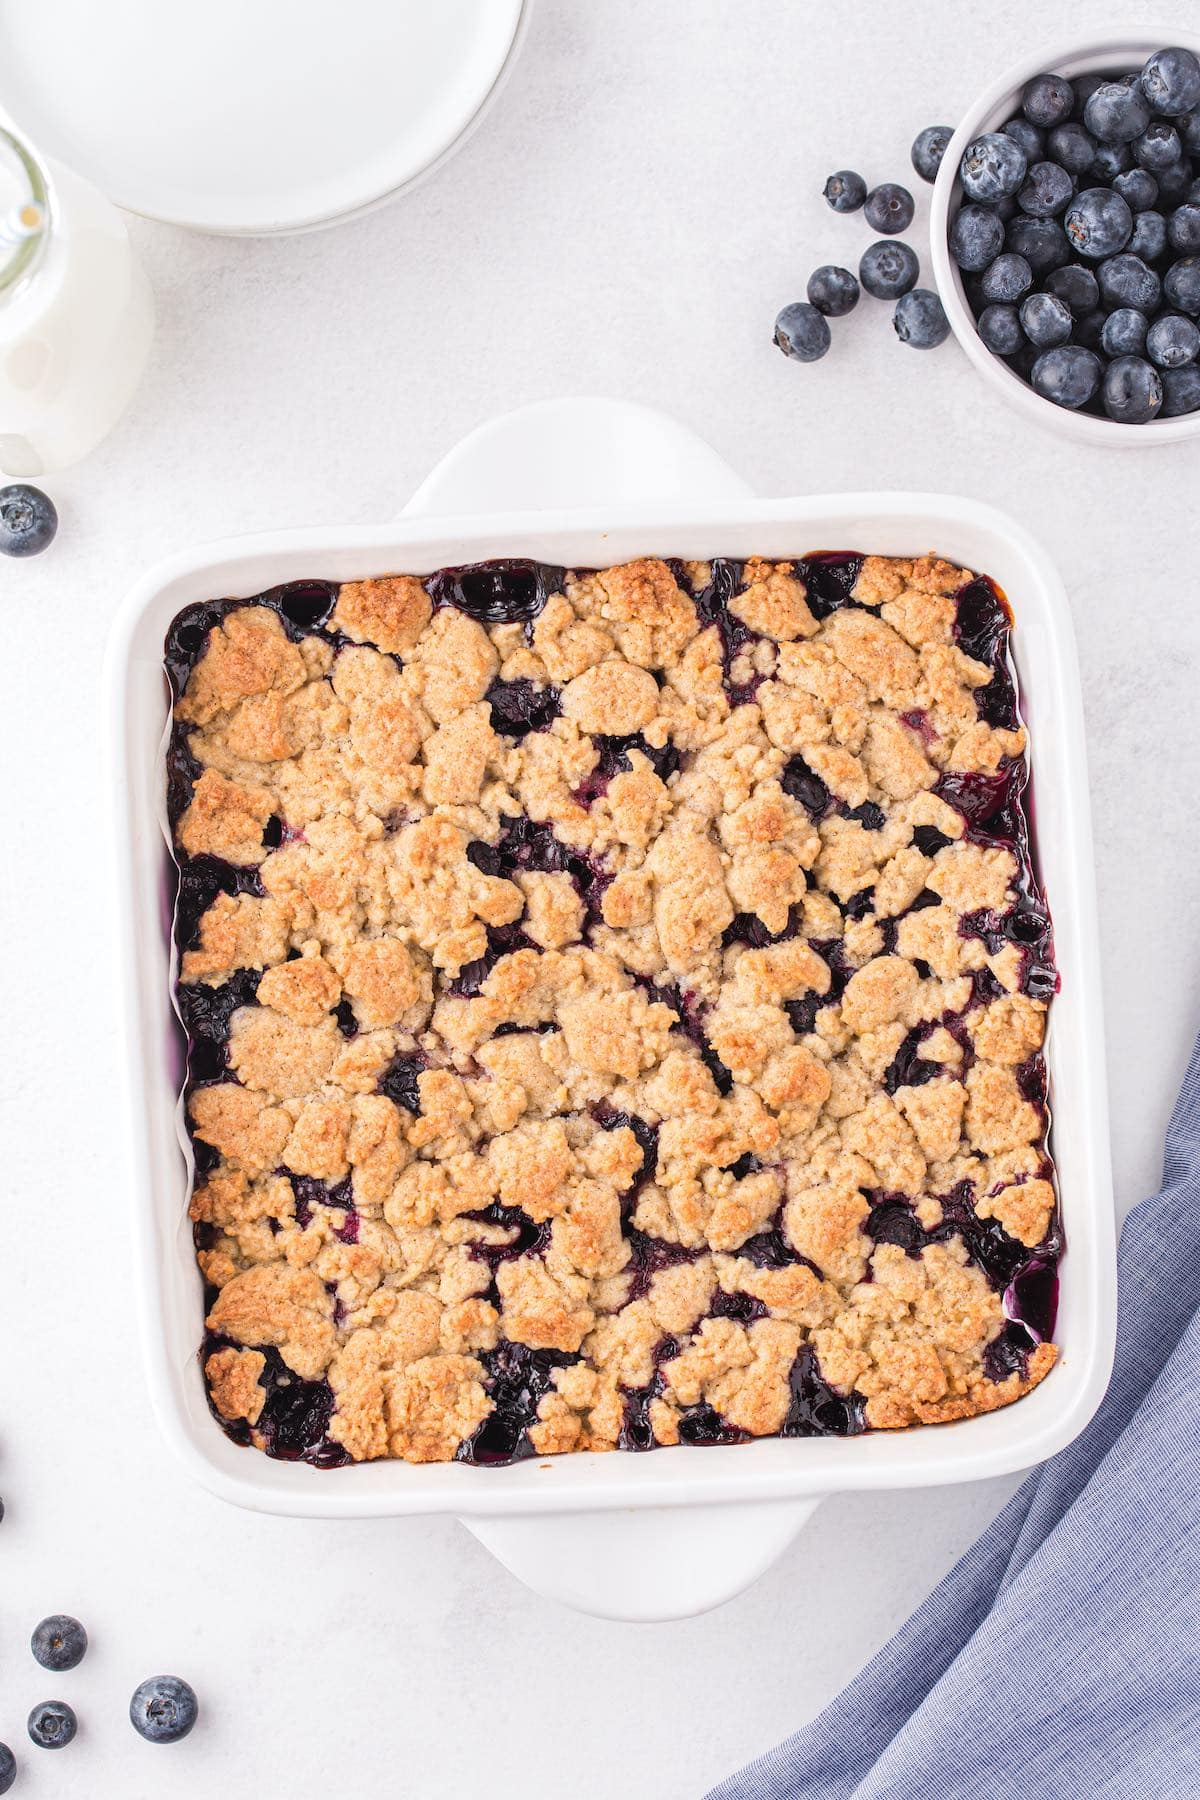 baked blueberry crumb bars